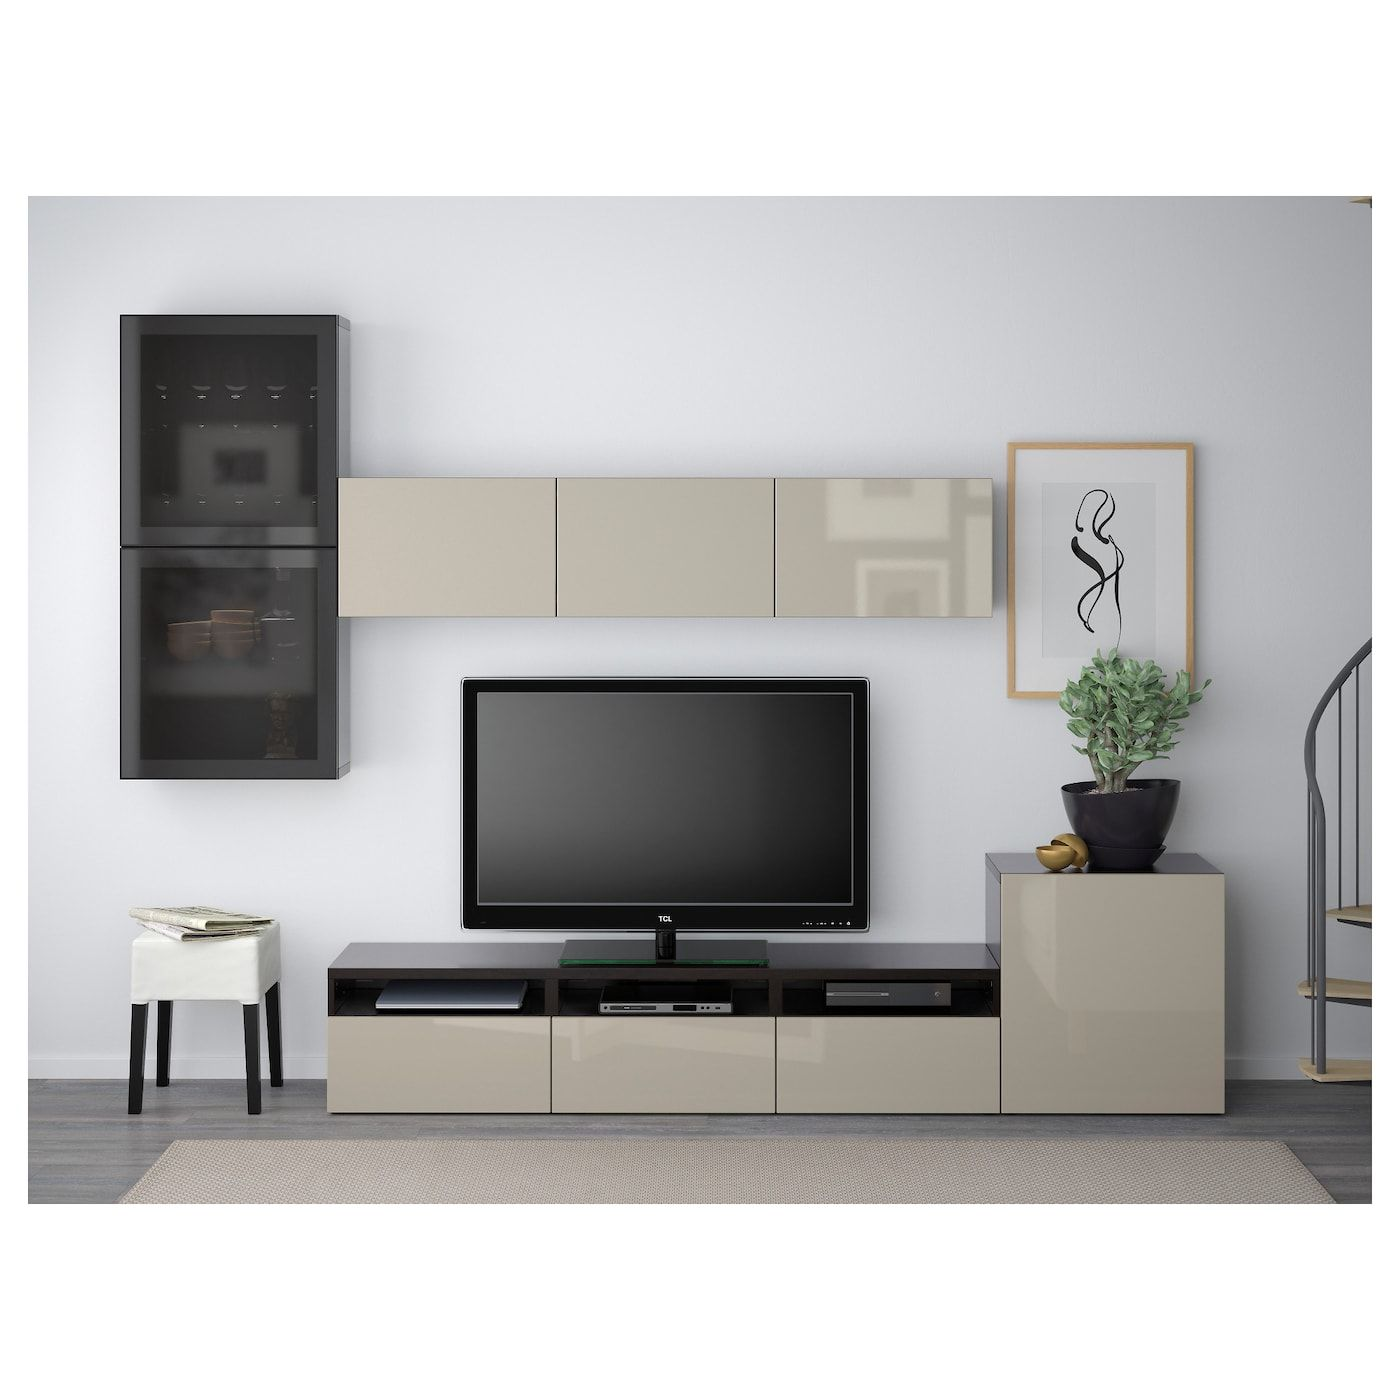 Ikea Besta Tv Storage Combination Glass Doors Black Brown